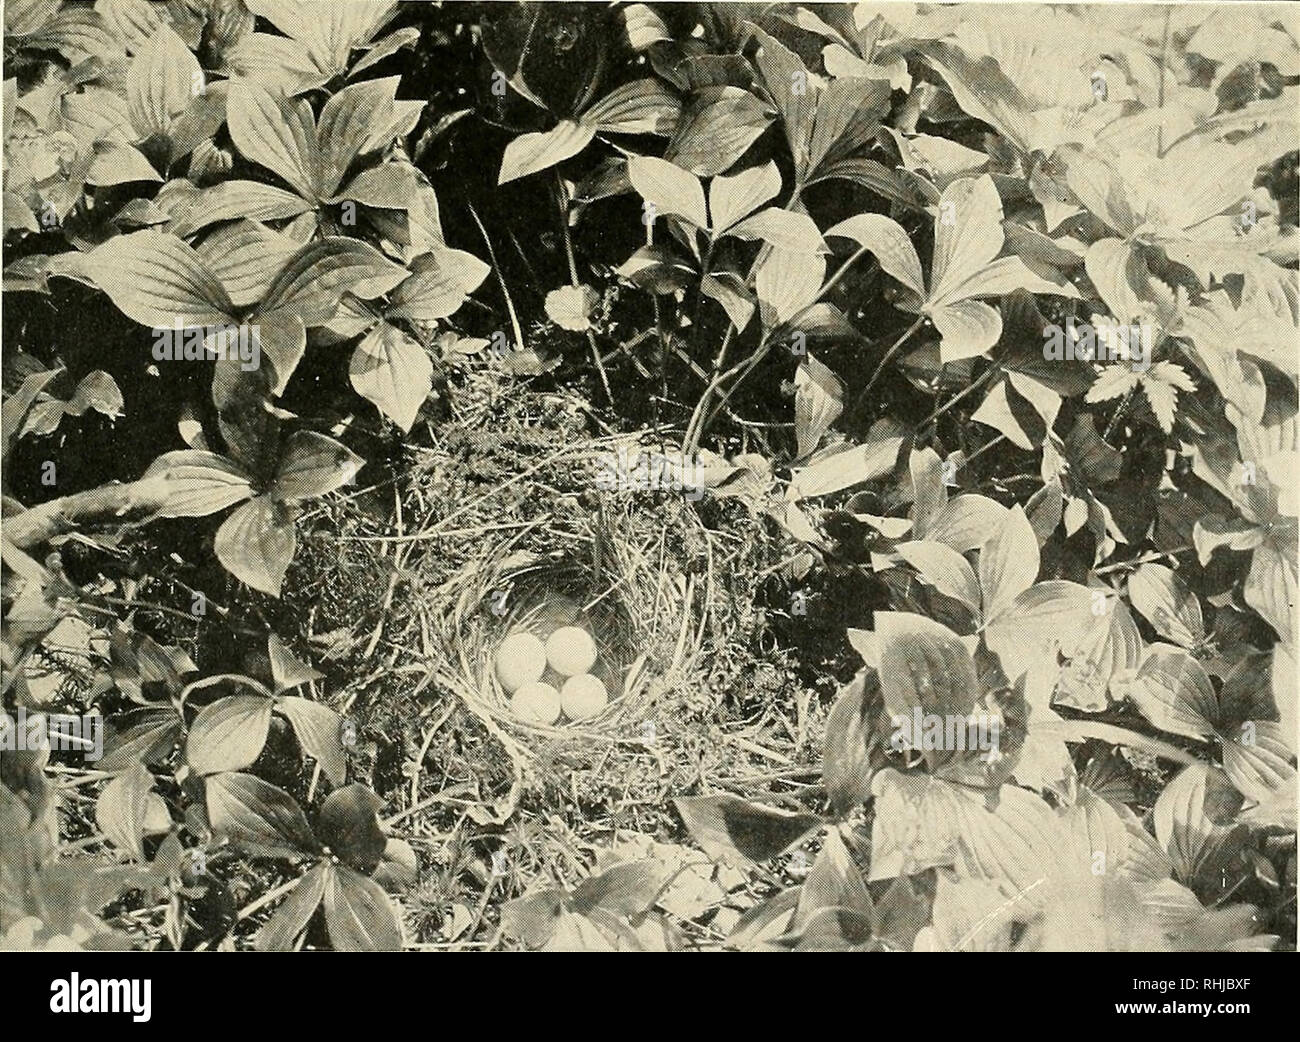 . Birds of Massachusetts and other New England states. Birds; Birds. Photograph by Miss Cordelia J. Slanivood Fig. 96. — Olive-backed Thrush in Juvenile Plumage Page 398. Pholoqrnph hi/ Mi-is Cordelia J. Stanwood Fig. 97. — Nest and Eggs of Hermit Thrush Page 401. Please note that these images are extracted from scanned page images that may have been digitally enhanced for readability - coloration and appearance of these illustrations may not perfectly resemble the original work.. Forbush, Edward Howe, 1858-1929; Massachusetts. Dept. of Agriculture. [Norwood, Ma. : Printed by Berwick and Smith Stock Photo